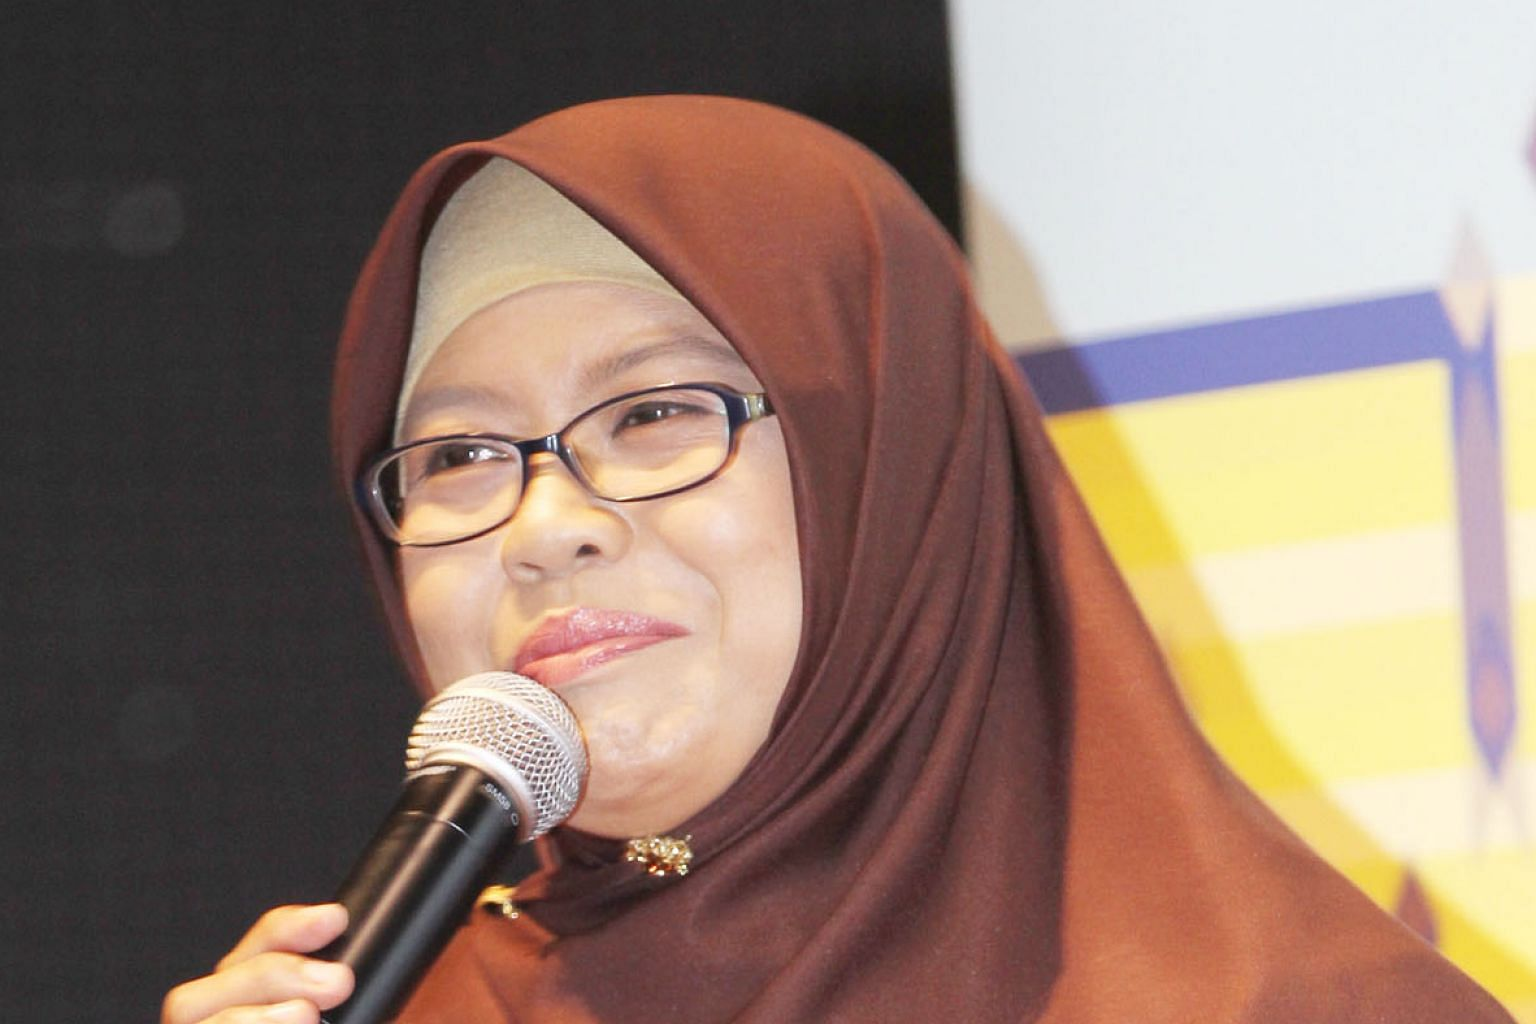 Children picture-book author and storyteller Jumaini Ariff will be telling folk tales at the Bulan Bahasa launch at the Malay Heritage Centre.